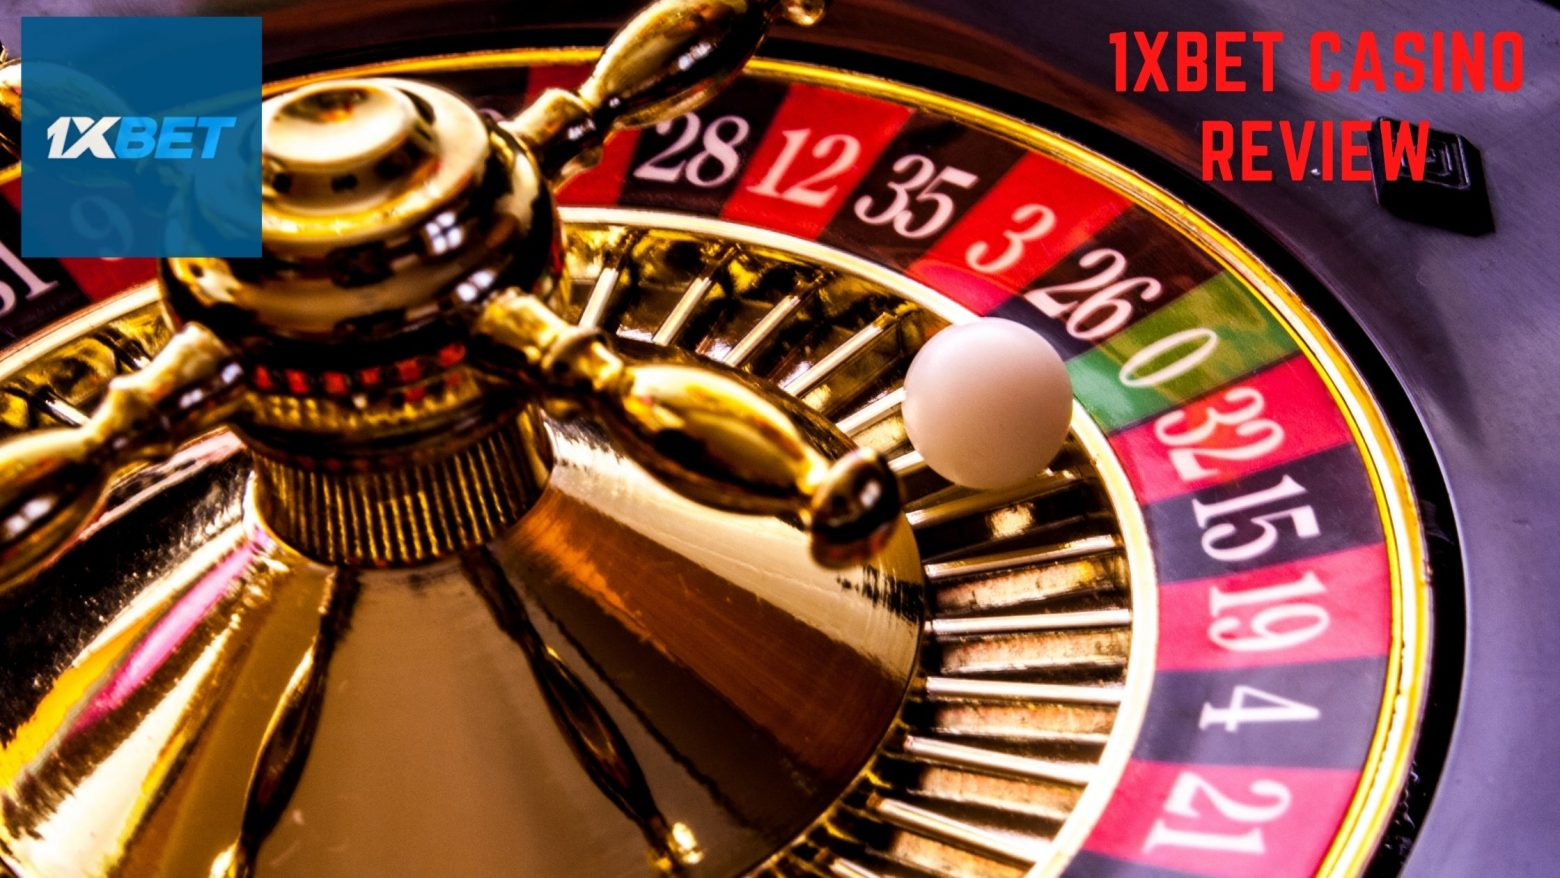 1xbet casino review updated 2021